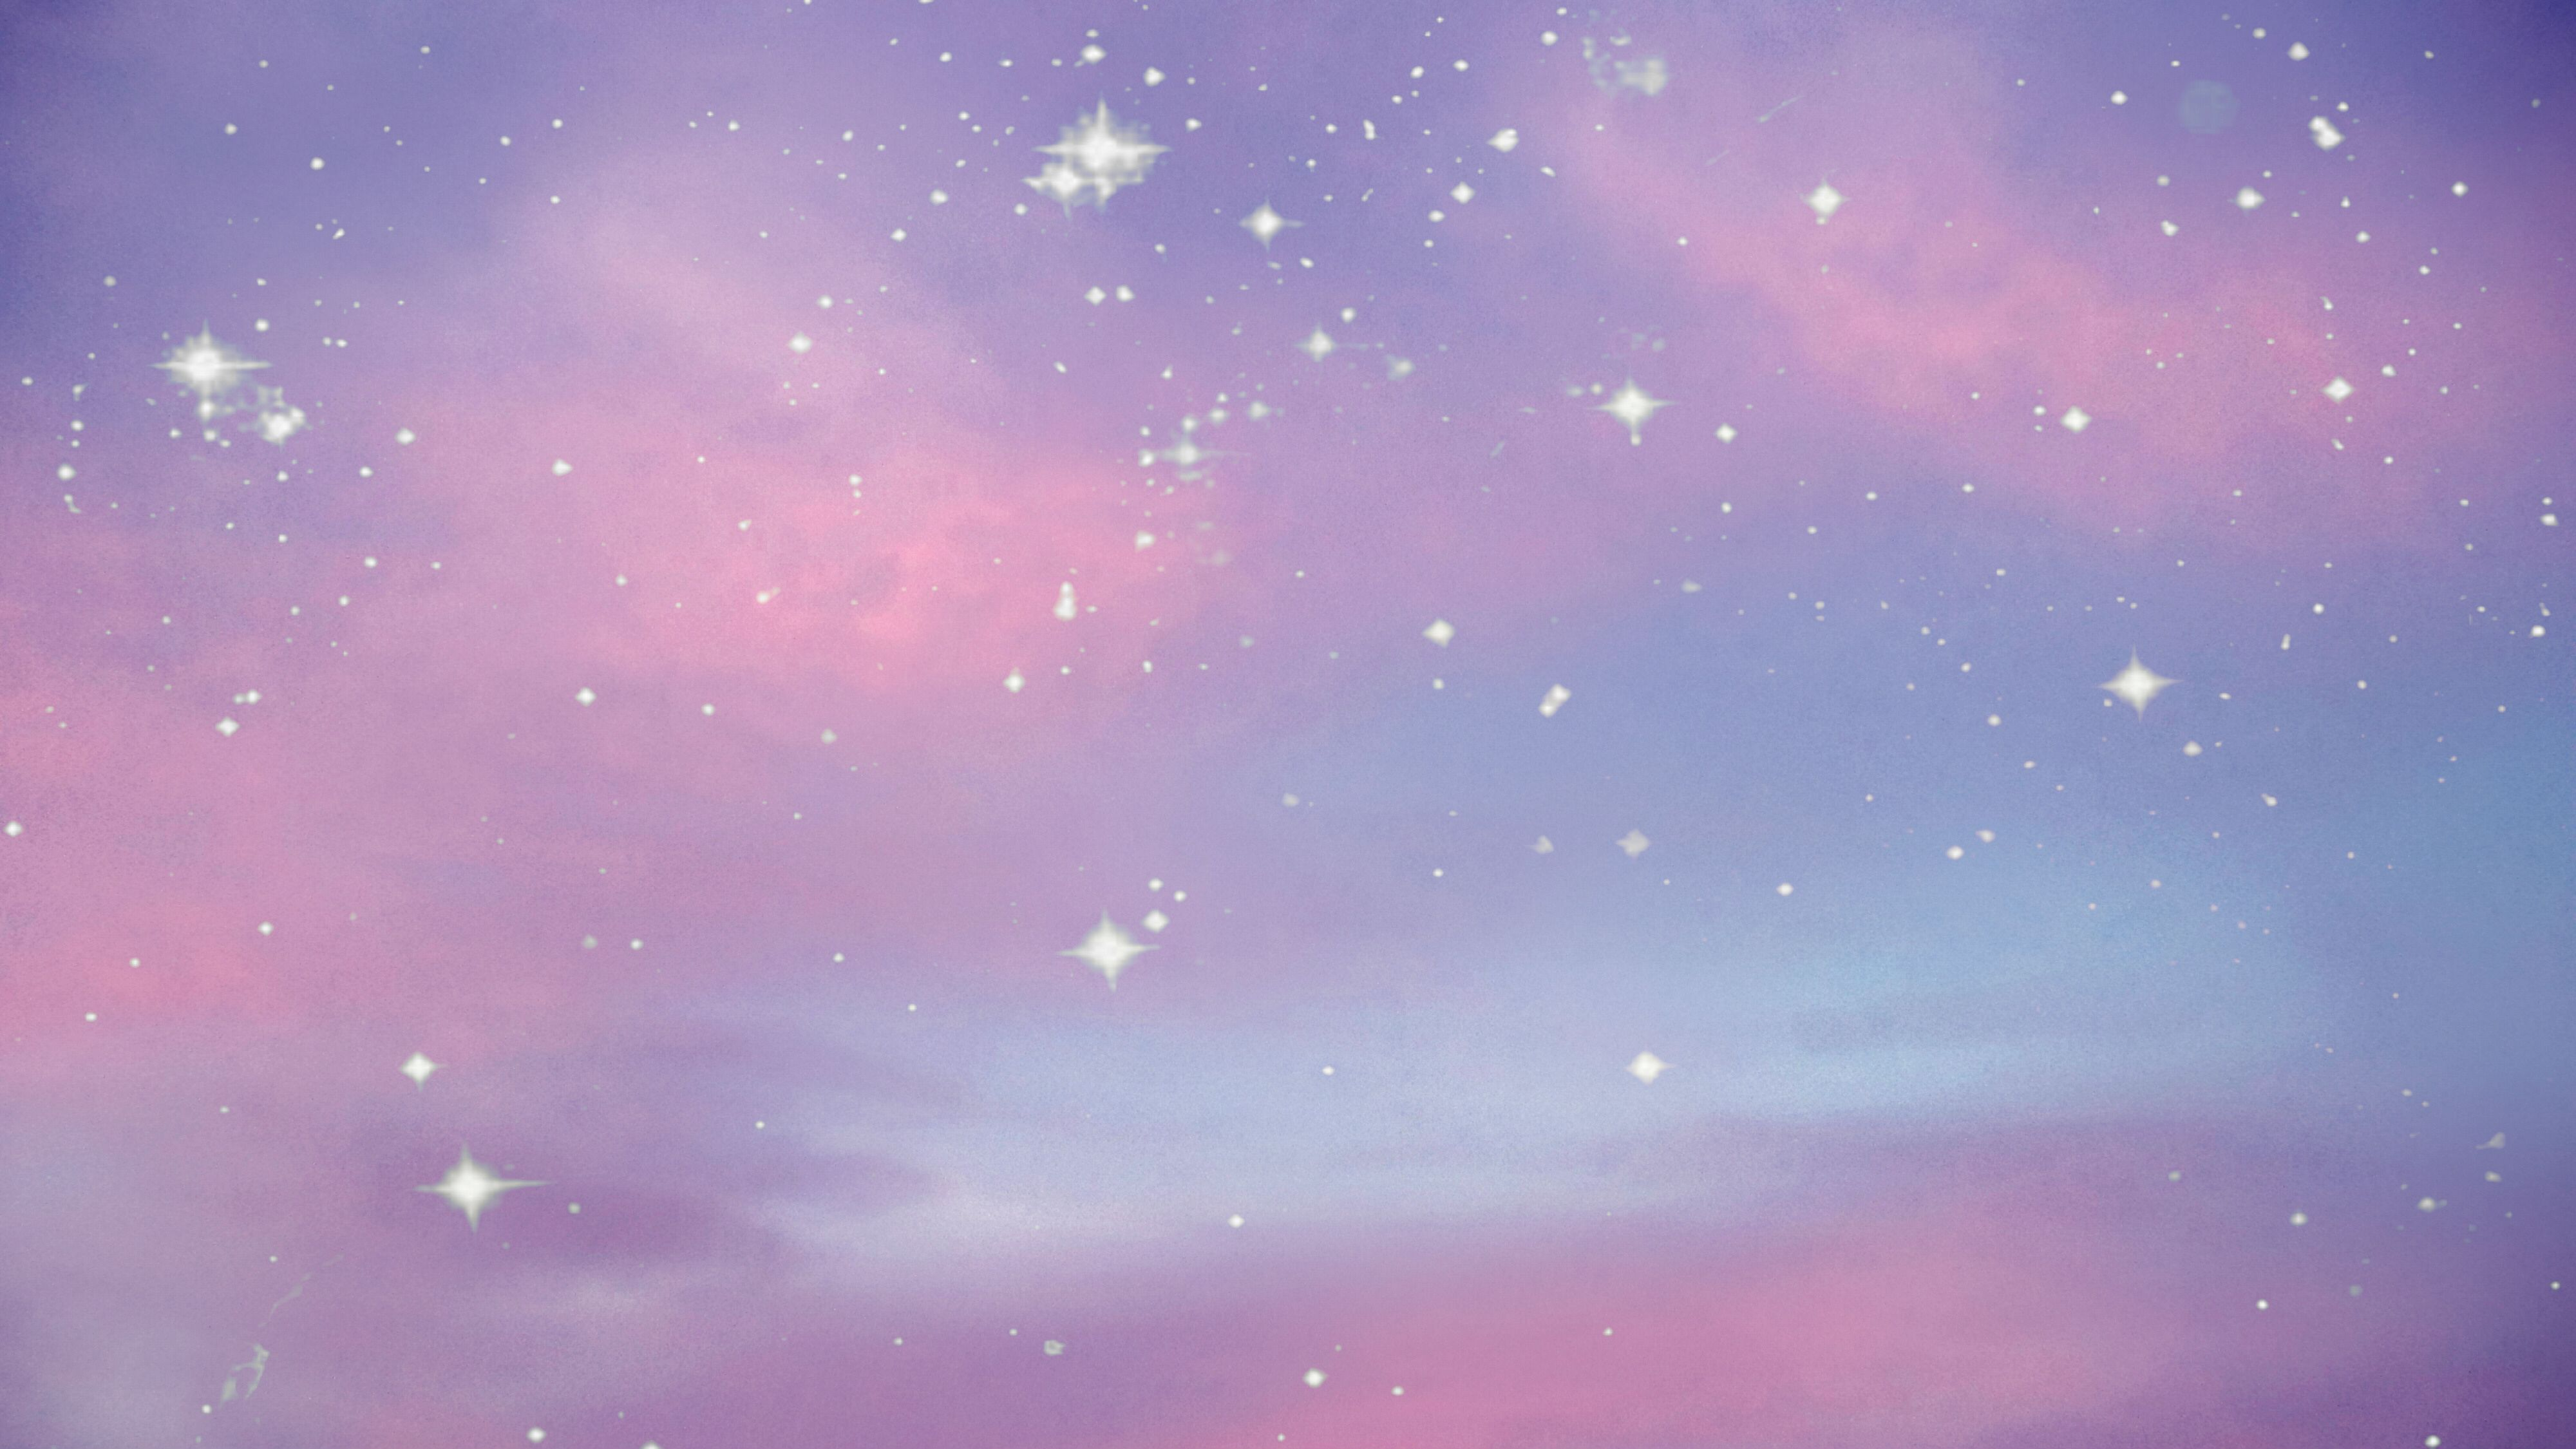 Pastel Space Aesthetic Computer Wallpapers Top Free Pastel Space Aesthetic Computer Backgrounds Wallpaperaccess